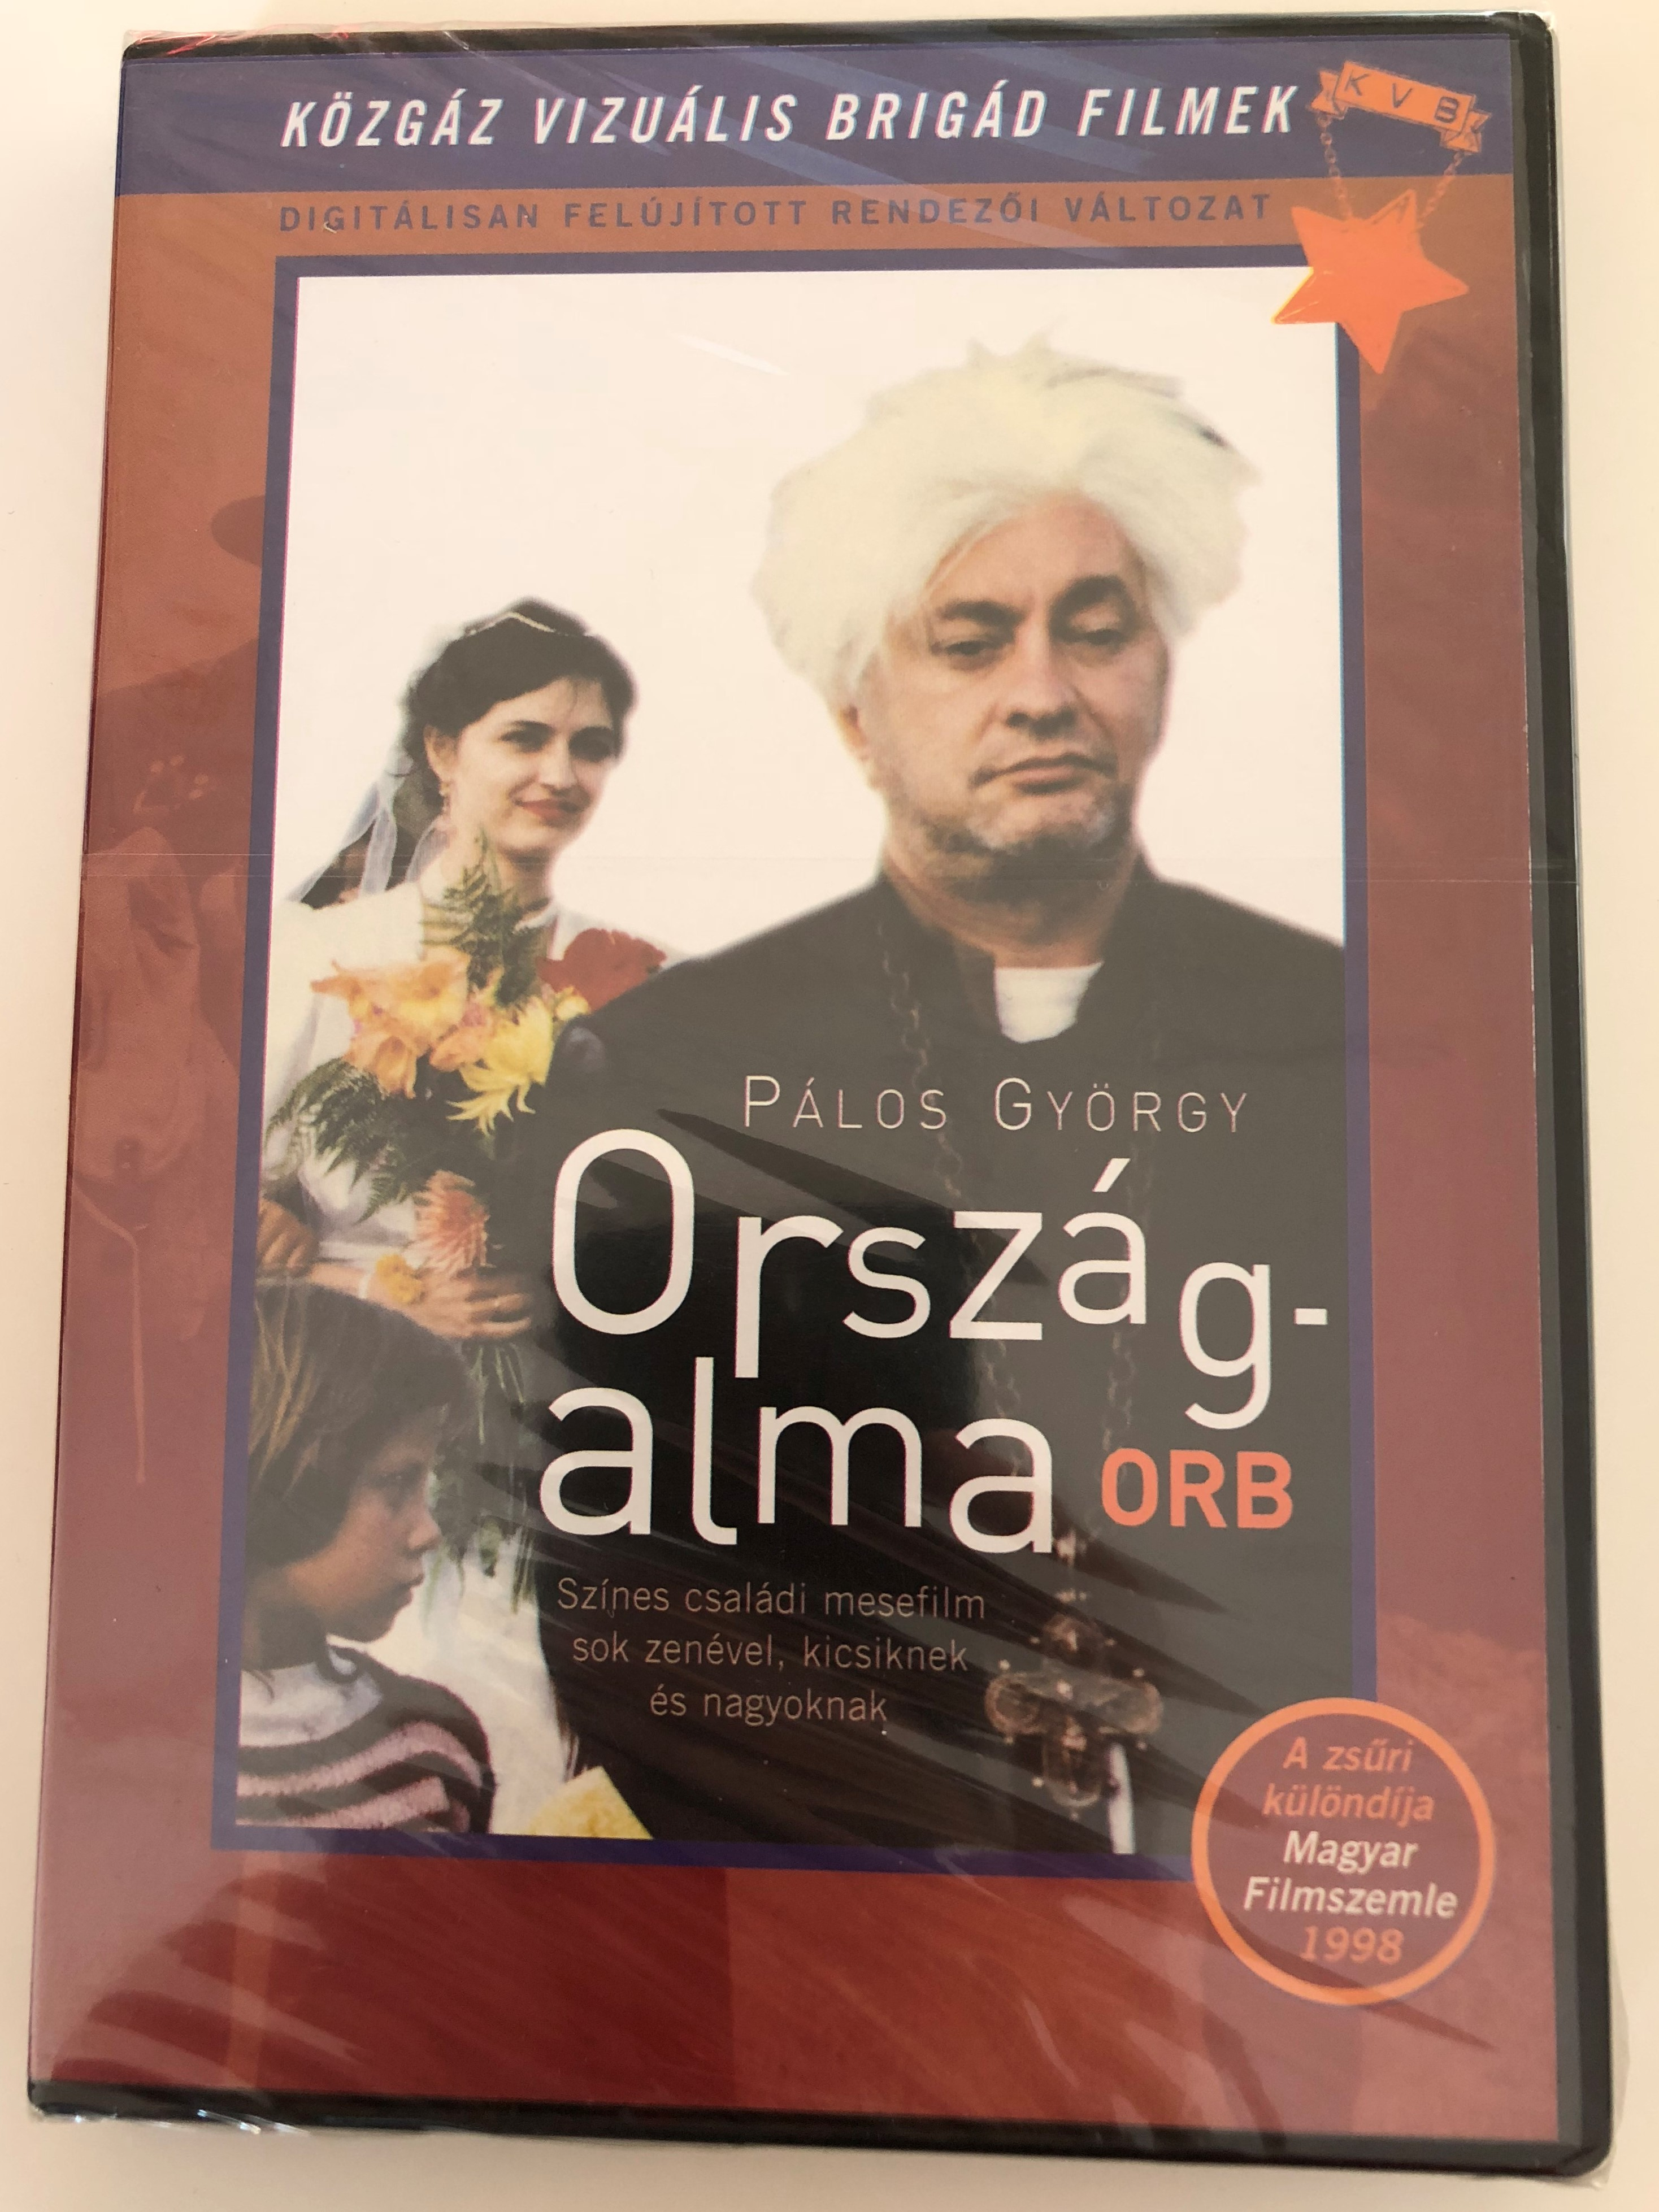 orsz-g-alma-dvd-1998-orb-directed-by-p-los-gy-rgy-starring-bad-r-s-ndor-gyabronka-j-zsef-marozs-n-erika-hersk-j-nos-1-.jpg